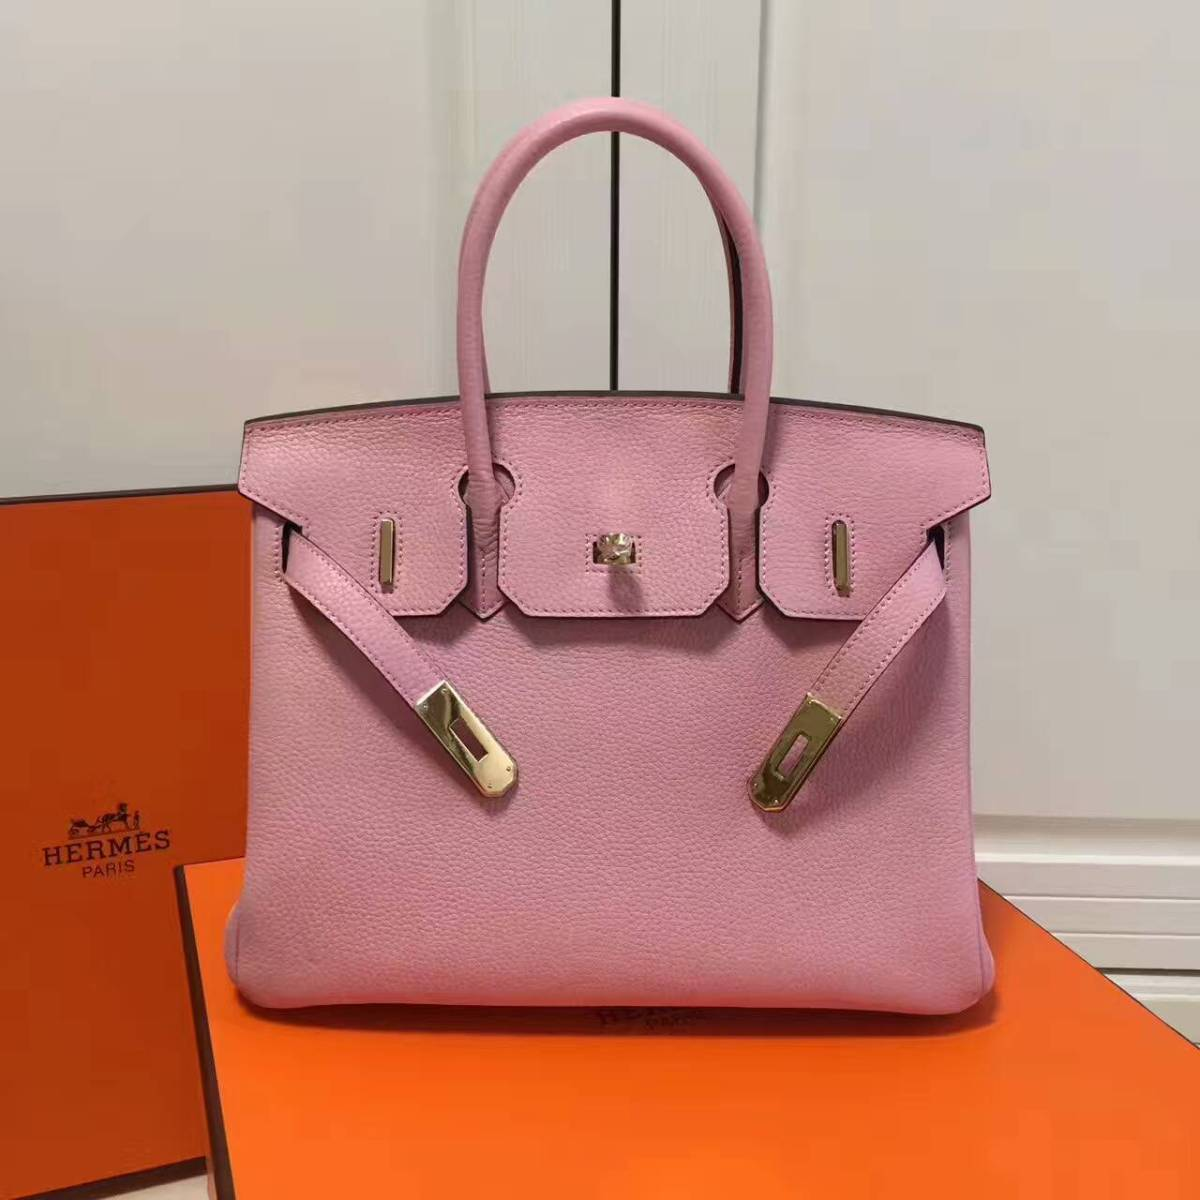 Hermes Birkin 25cm/30cm/35cm Original Togo leather bag